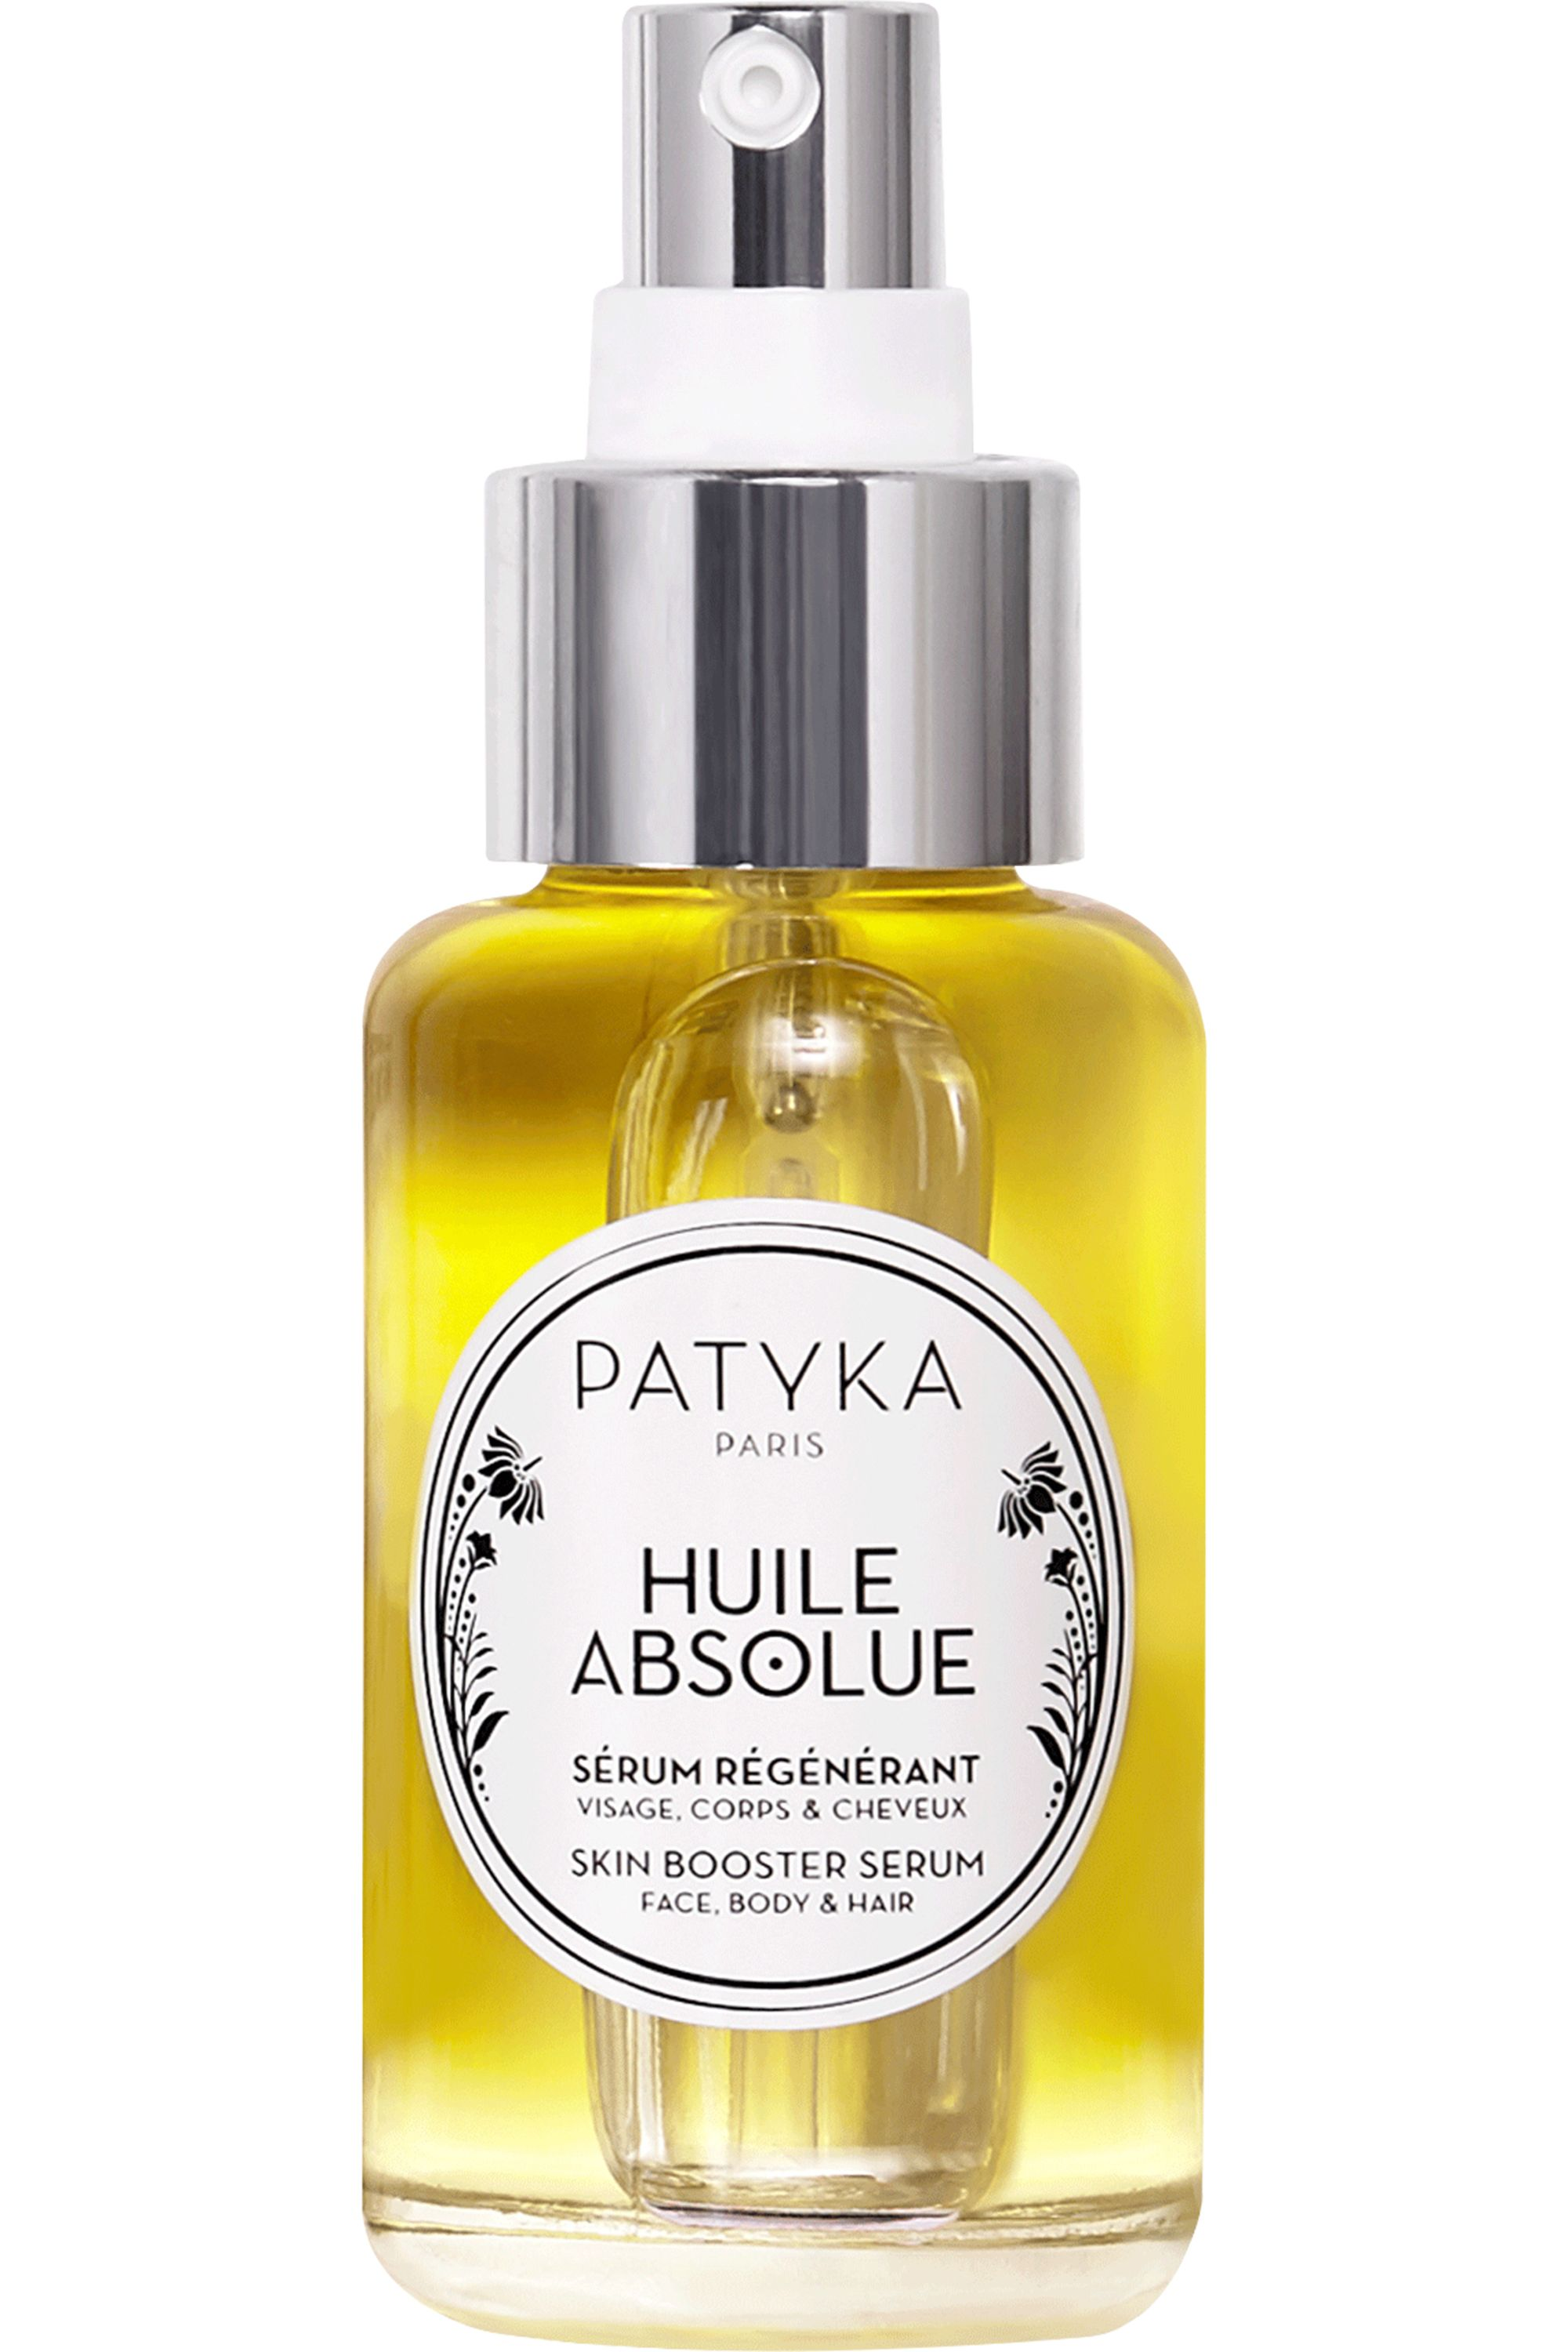 Blissim : Patyka - Huile Absolue - Huile Absolue